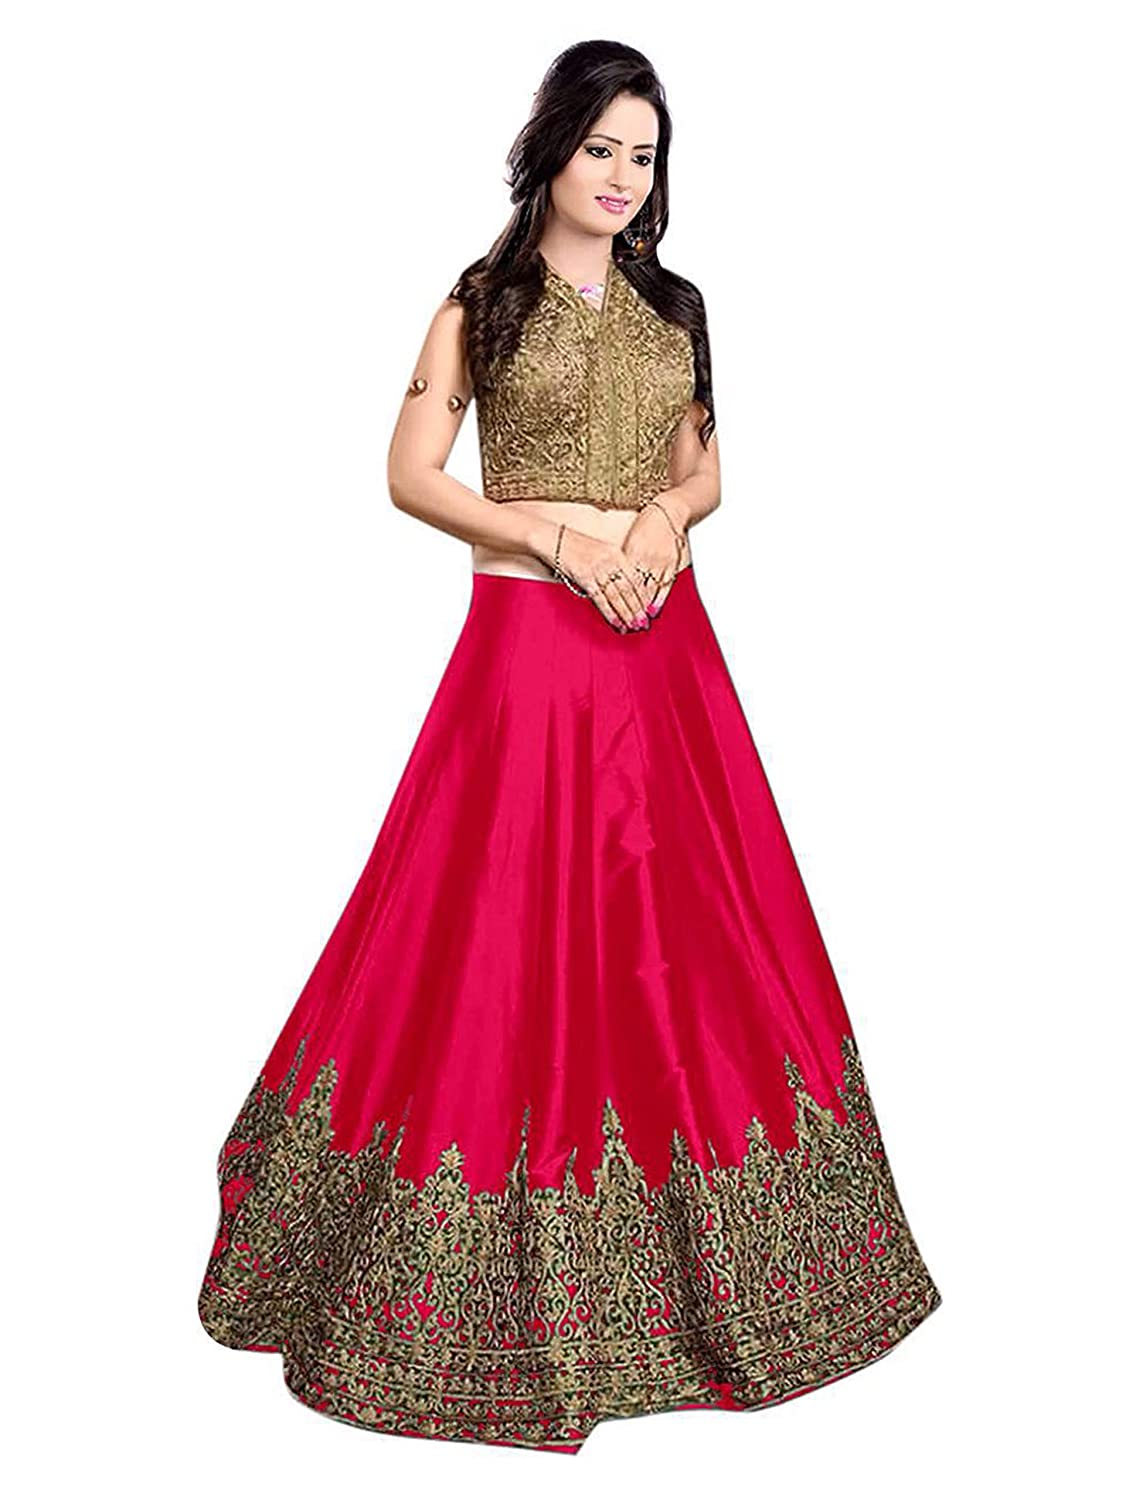 pop mantra lengha Choli up to 81% off + Extra coupon @ Amazon